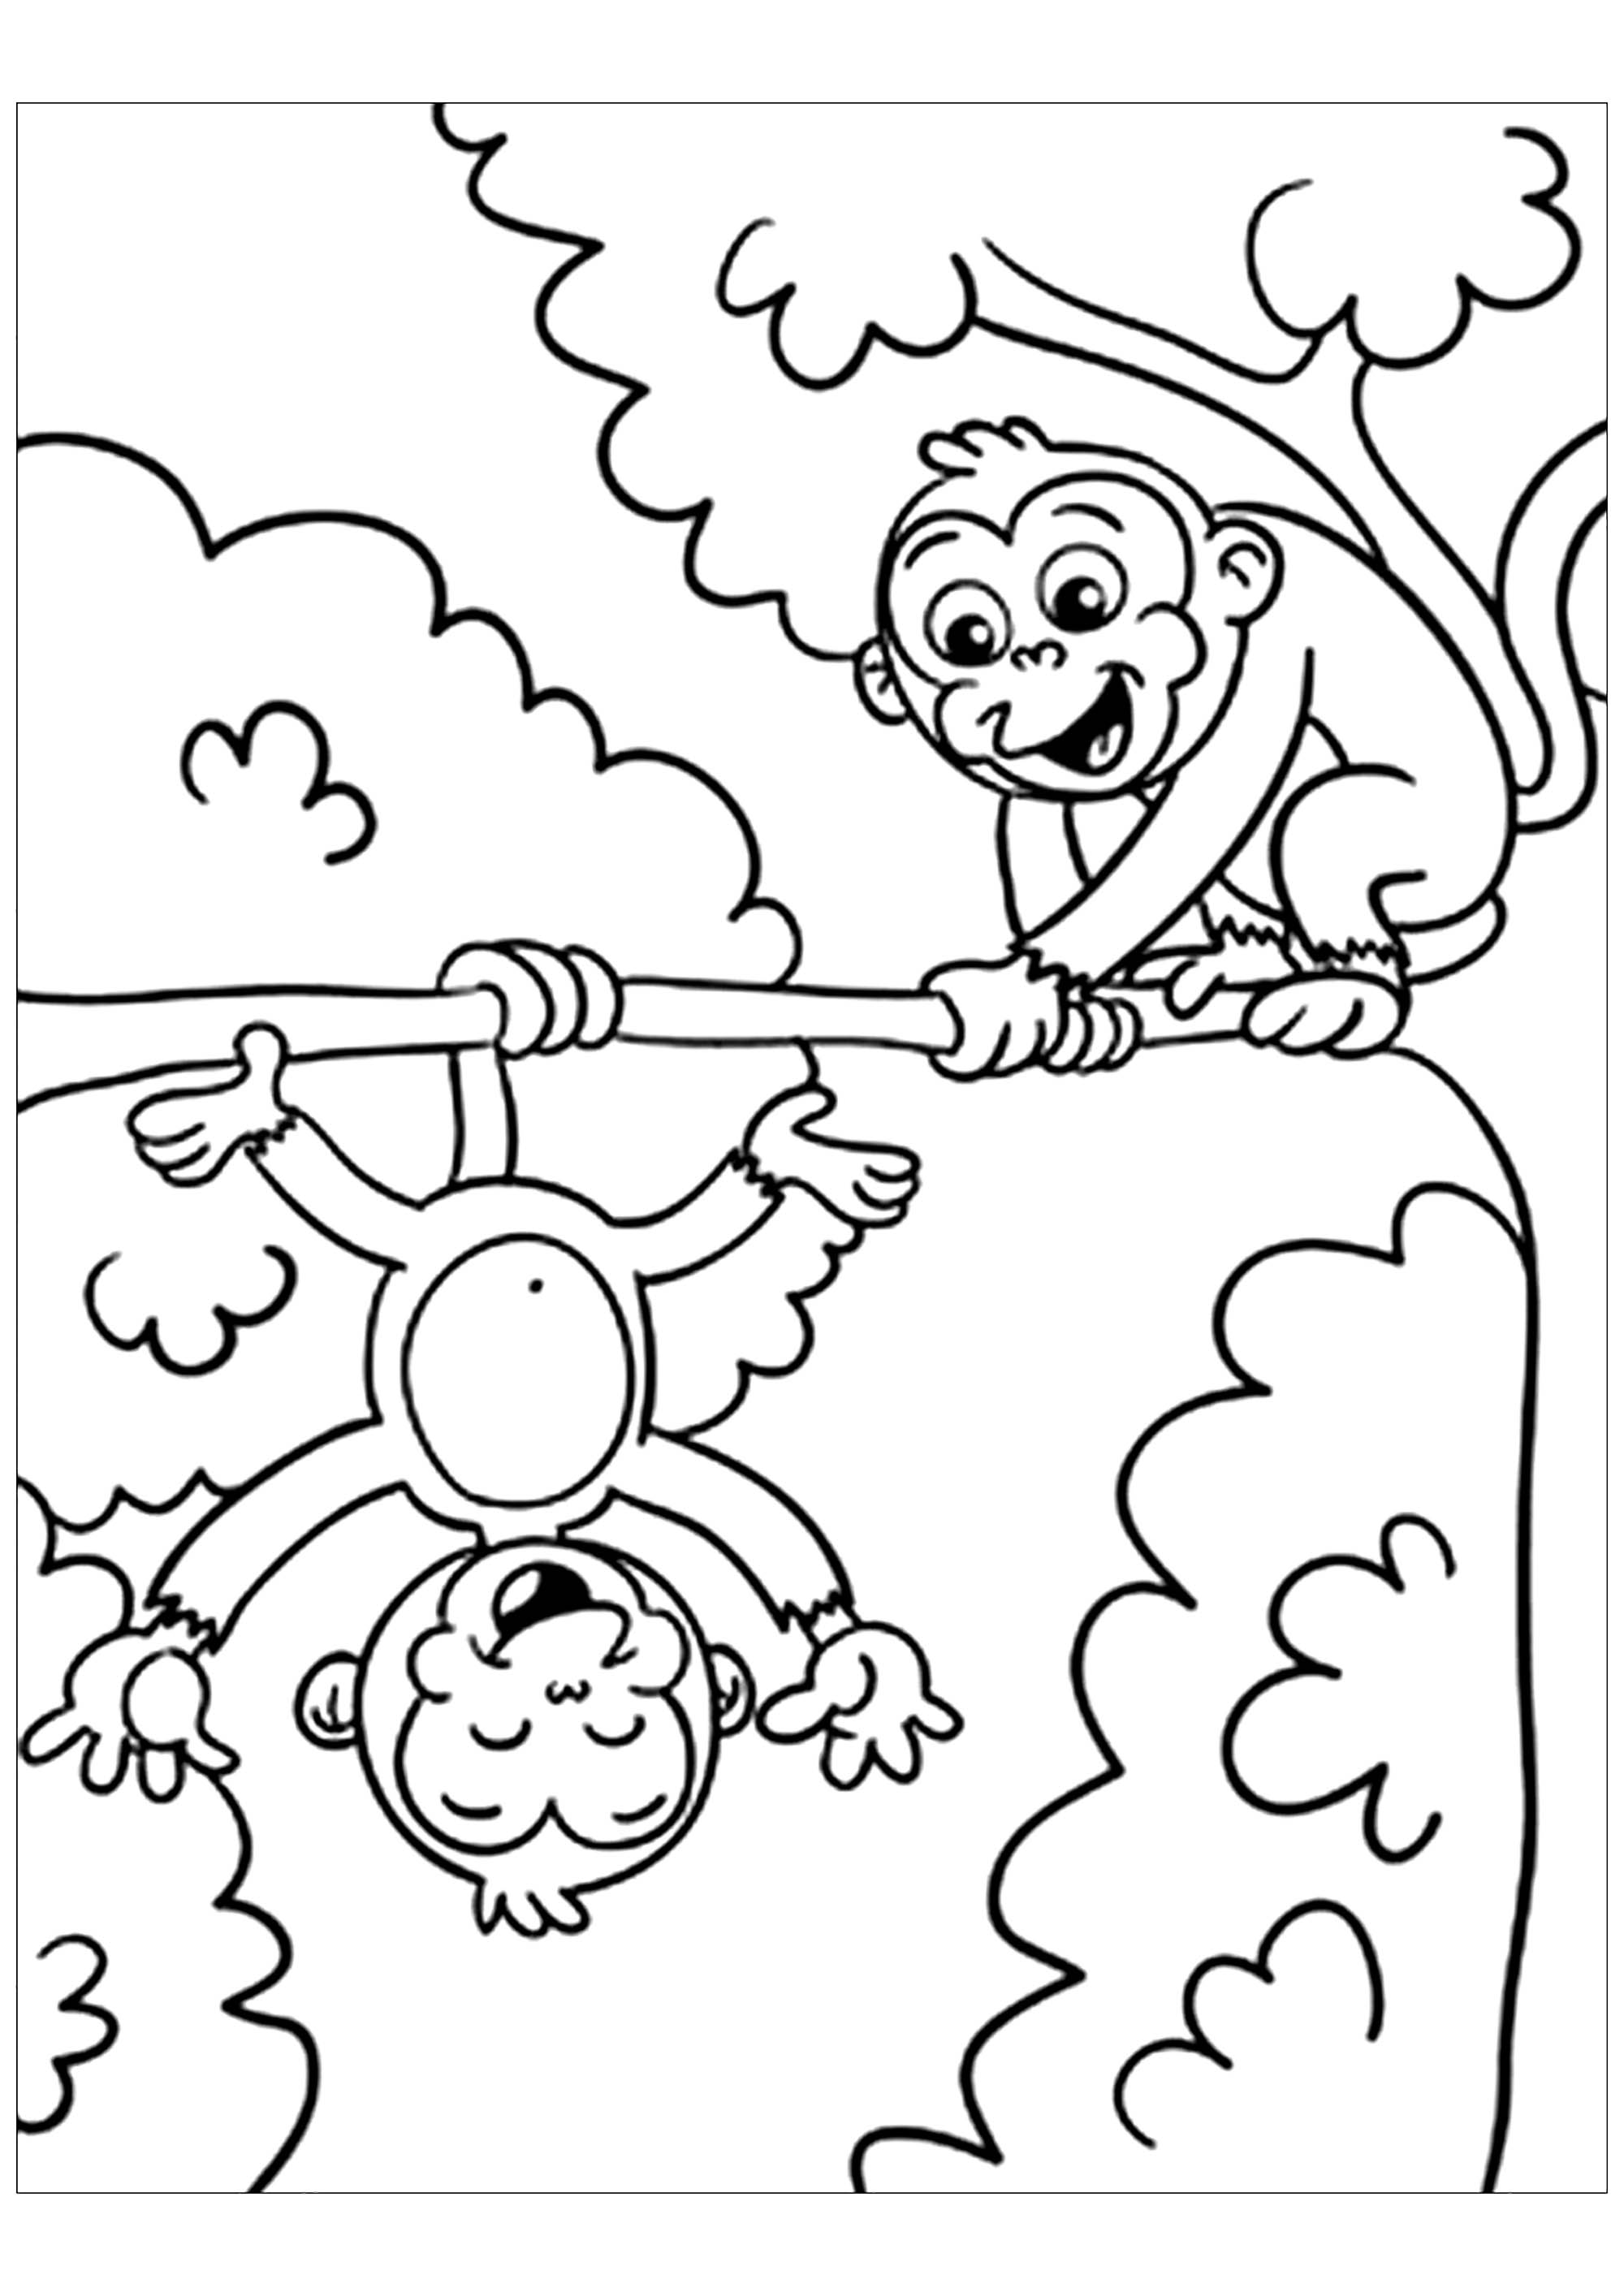 coloring pages of monkey monkeys to print for free monkeys kids coloring pages pages of monkey coloring